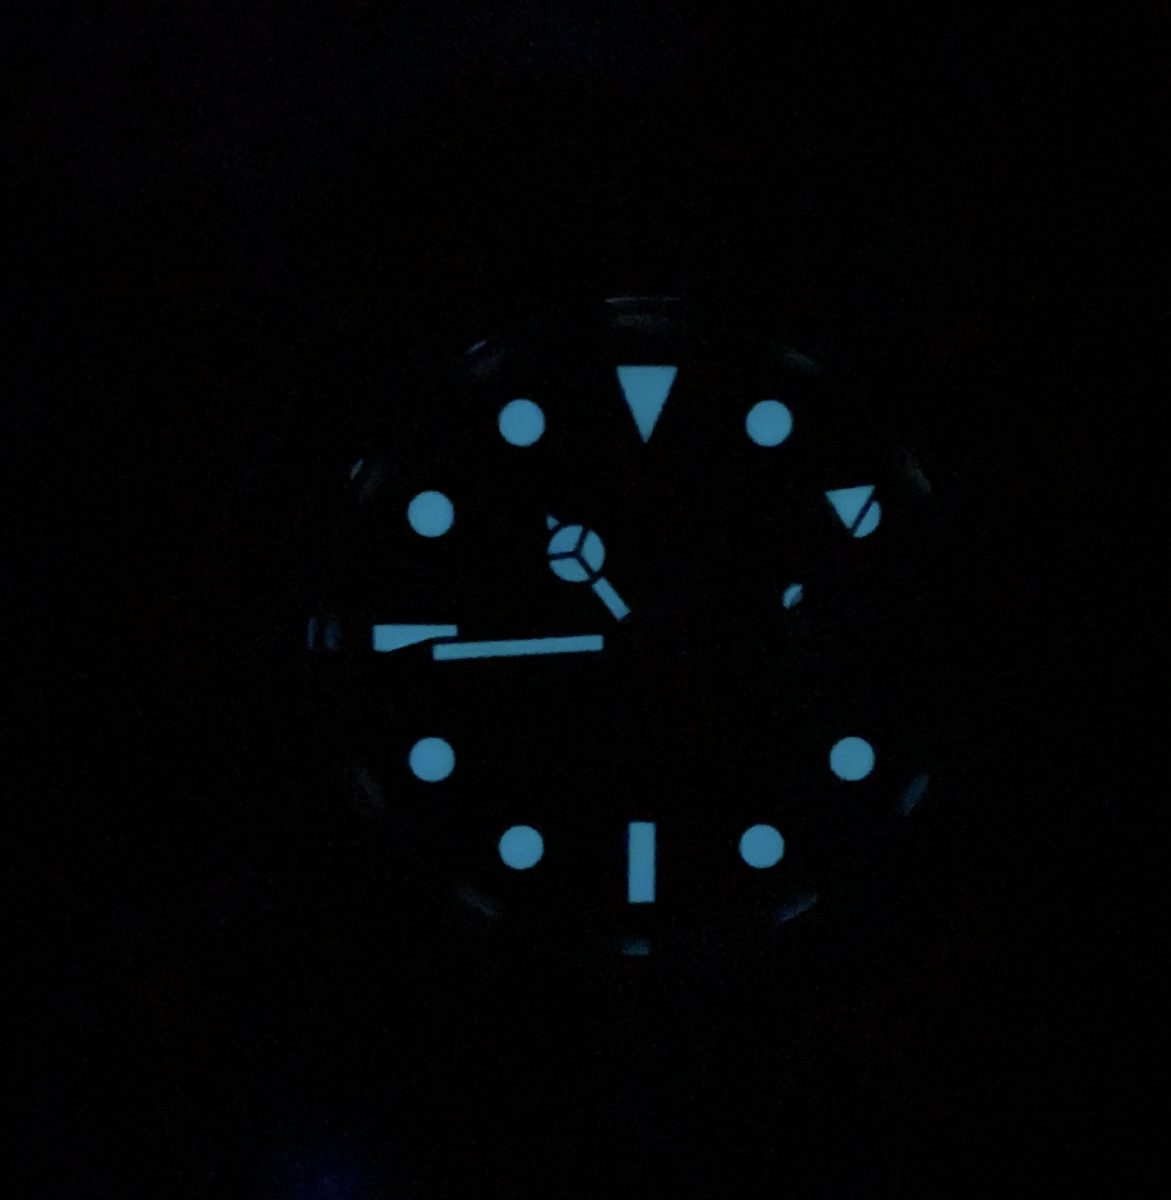 Classic watch face with luminous application highlighted